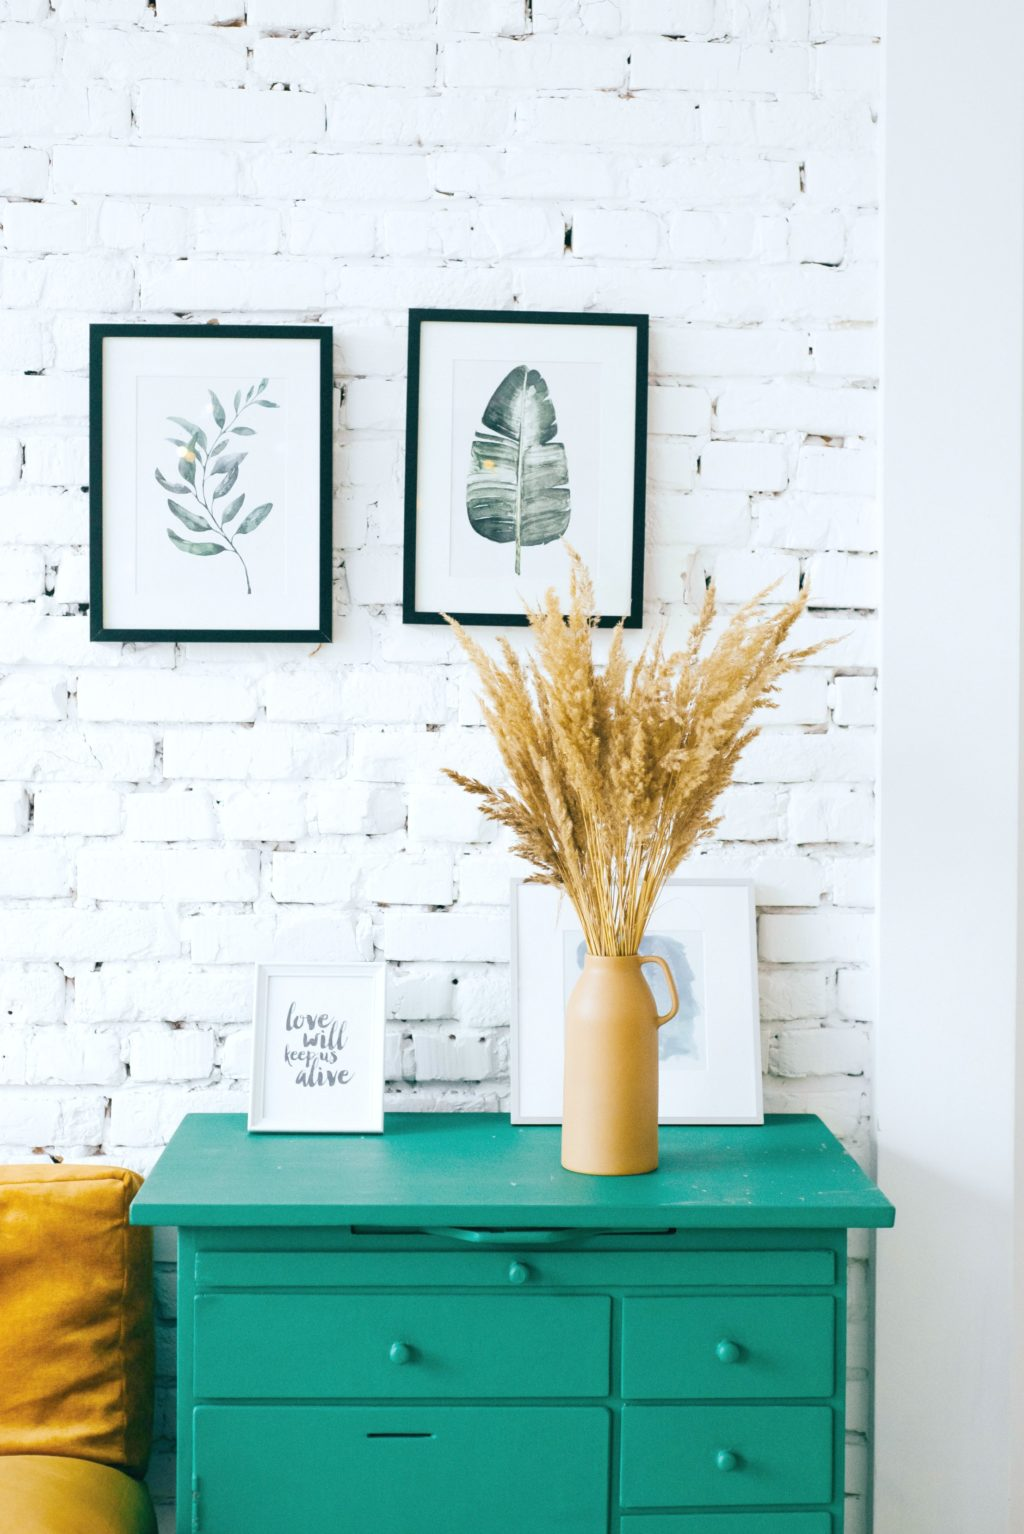 A painted white brick wall, with a teal nightstand with two pictures on the wall and flowers on the table. An easy way to decorate on a budget.